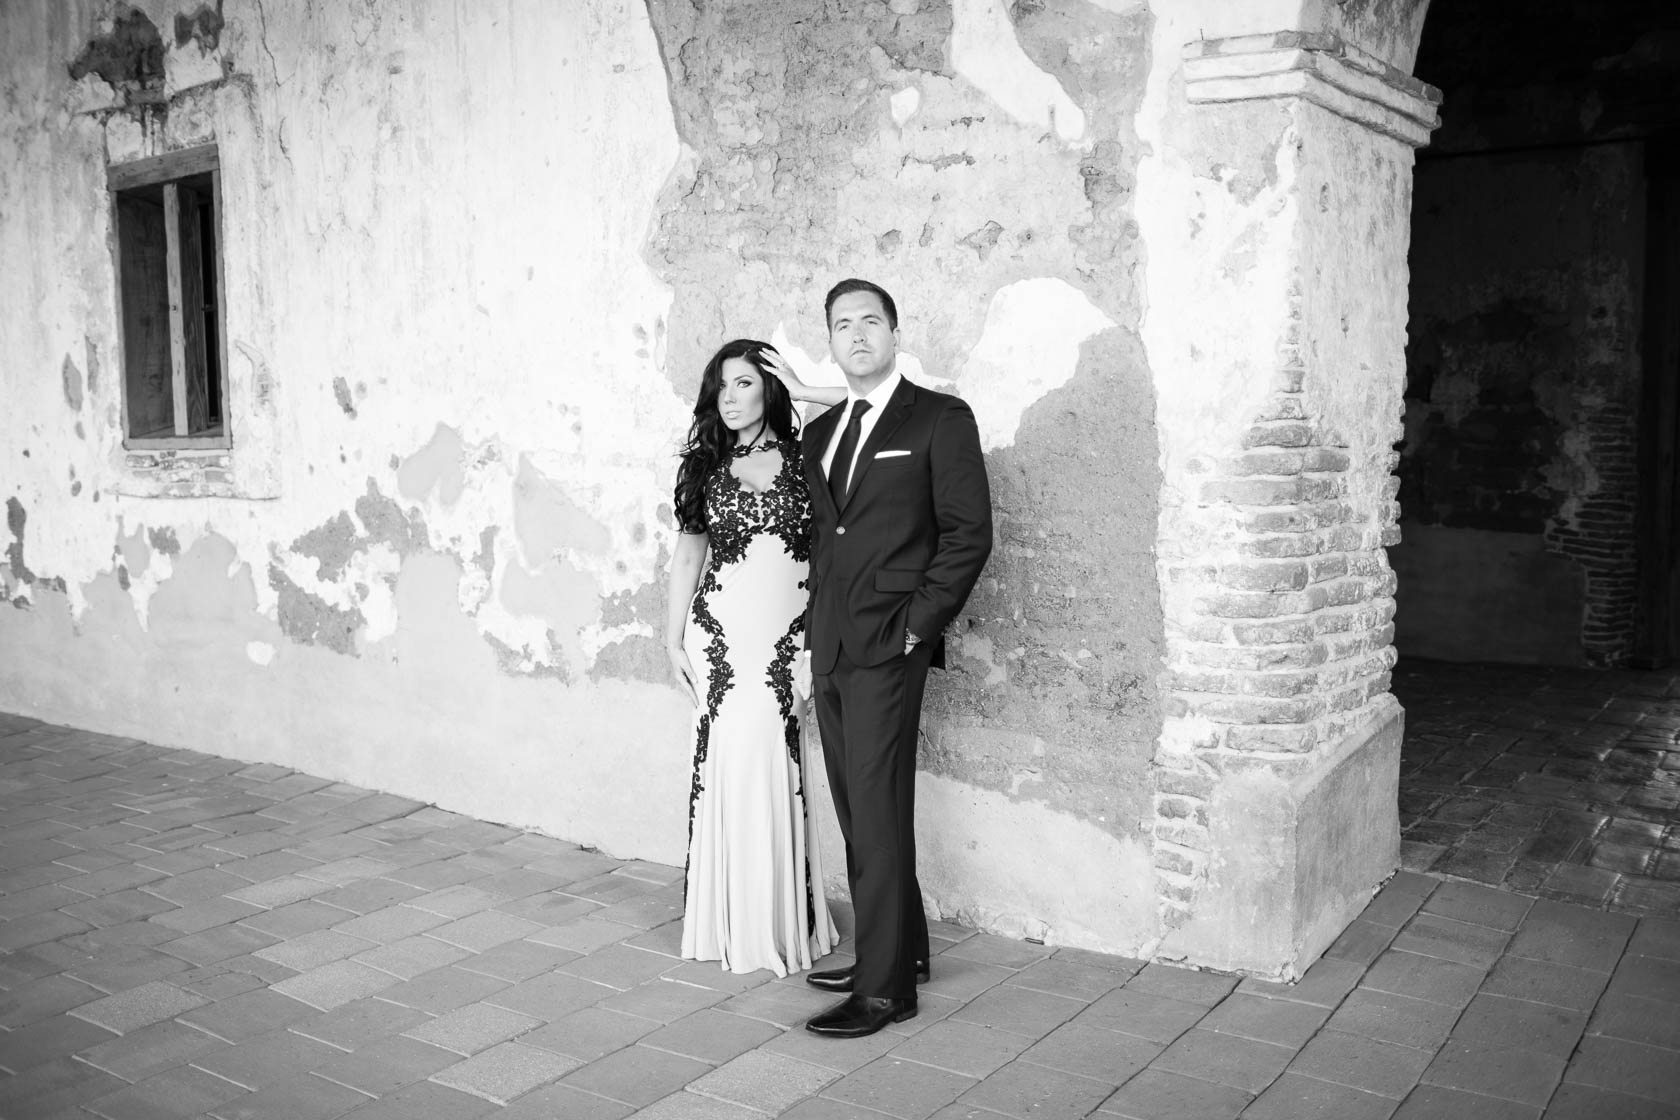 Mission_San_Juan_Capistrano_Engagement_Session_22.jpg